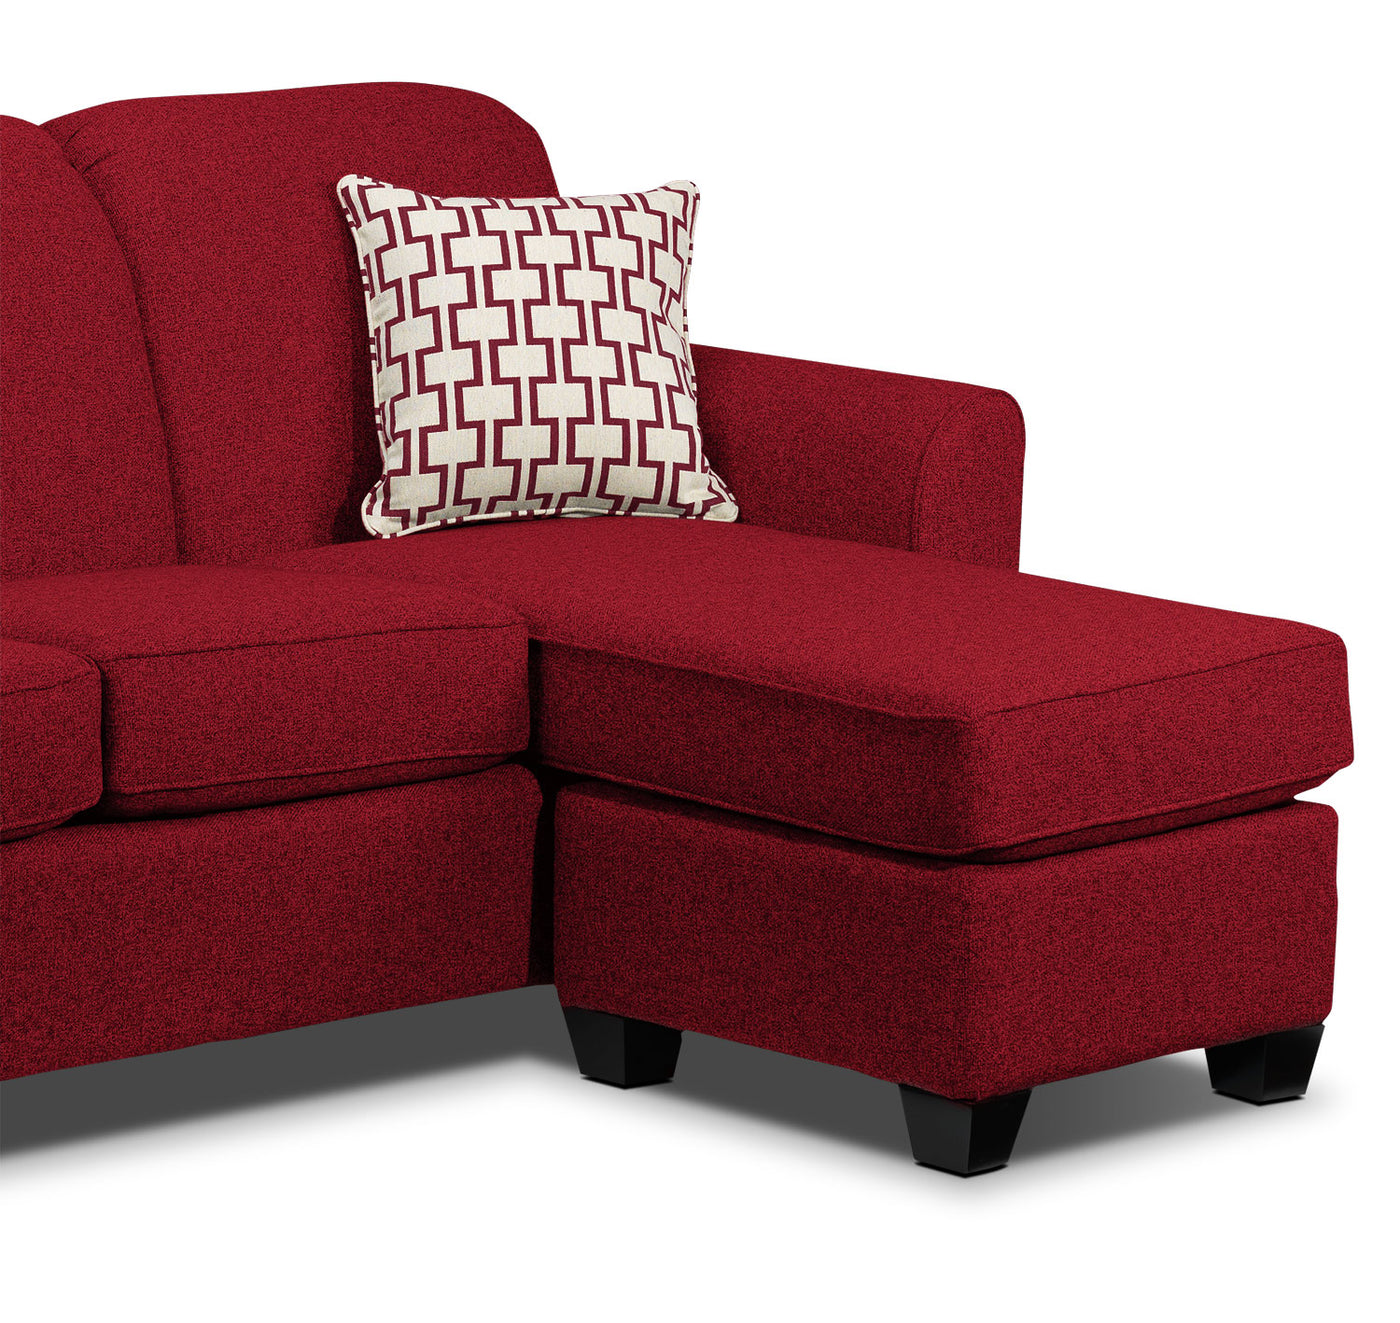 Outstanding Ashby Chaise Sofa Red Andrewgaddart Wooden Chair Designs For Living Room Andrewgaddartcom